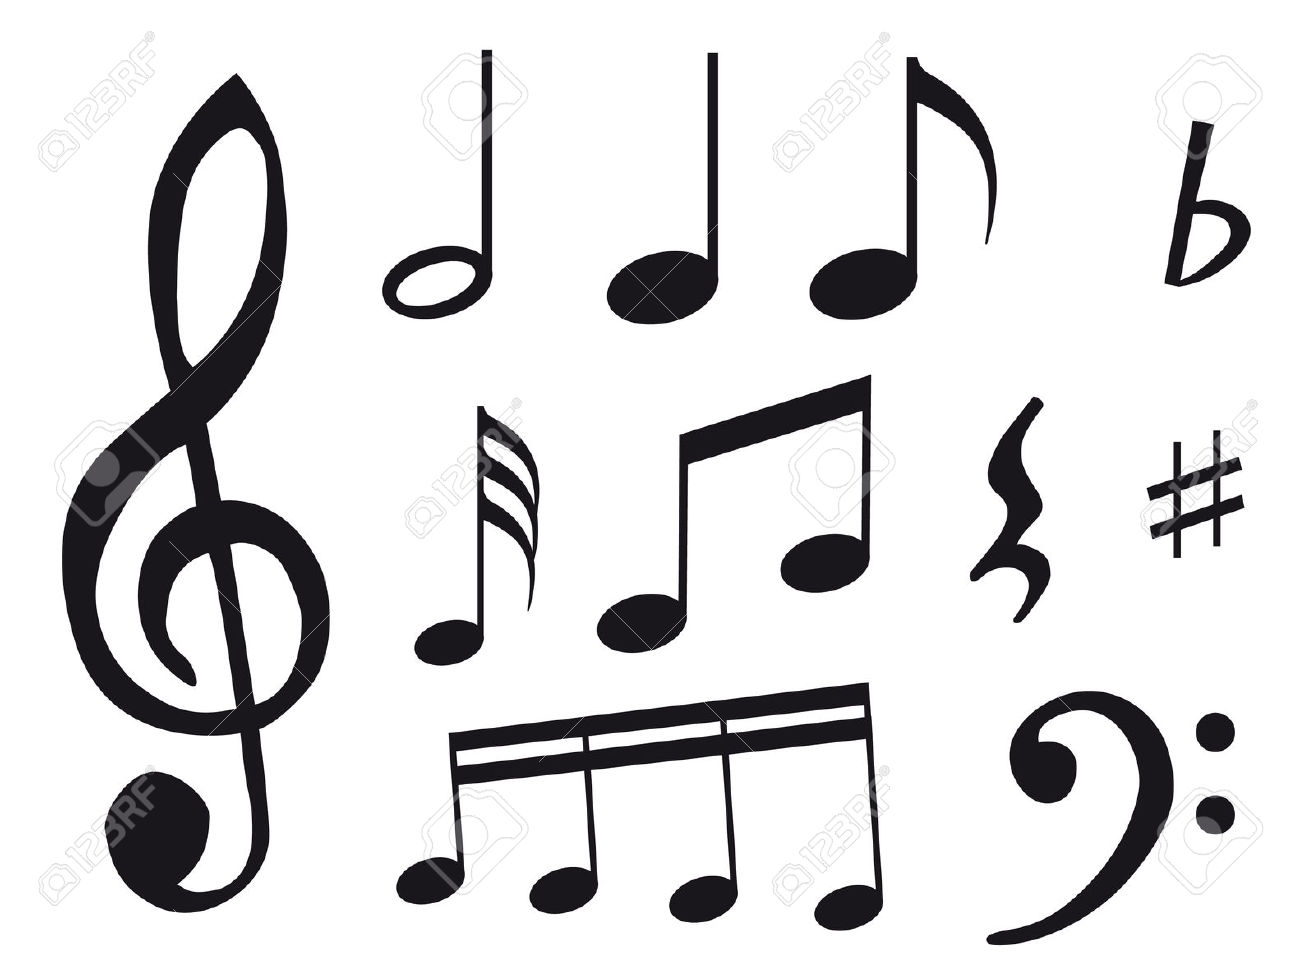 1300x974 Pictures Of Music Notes And Symbols Group